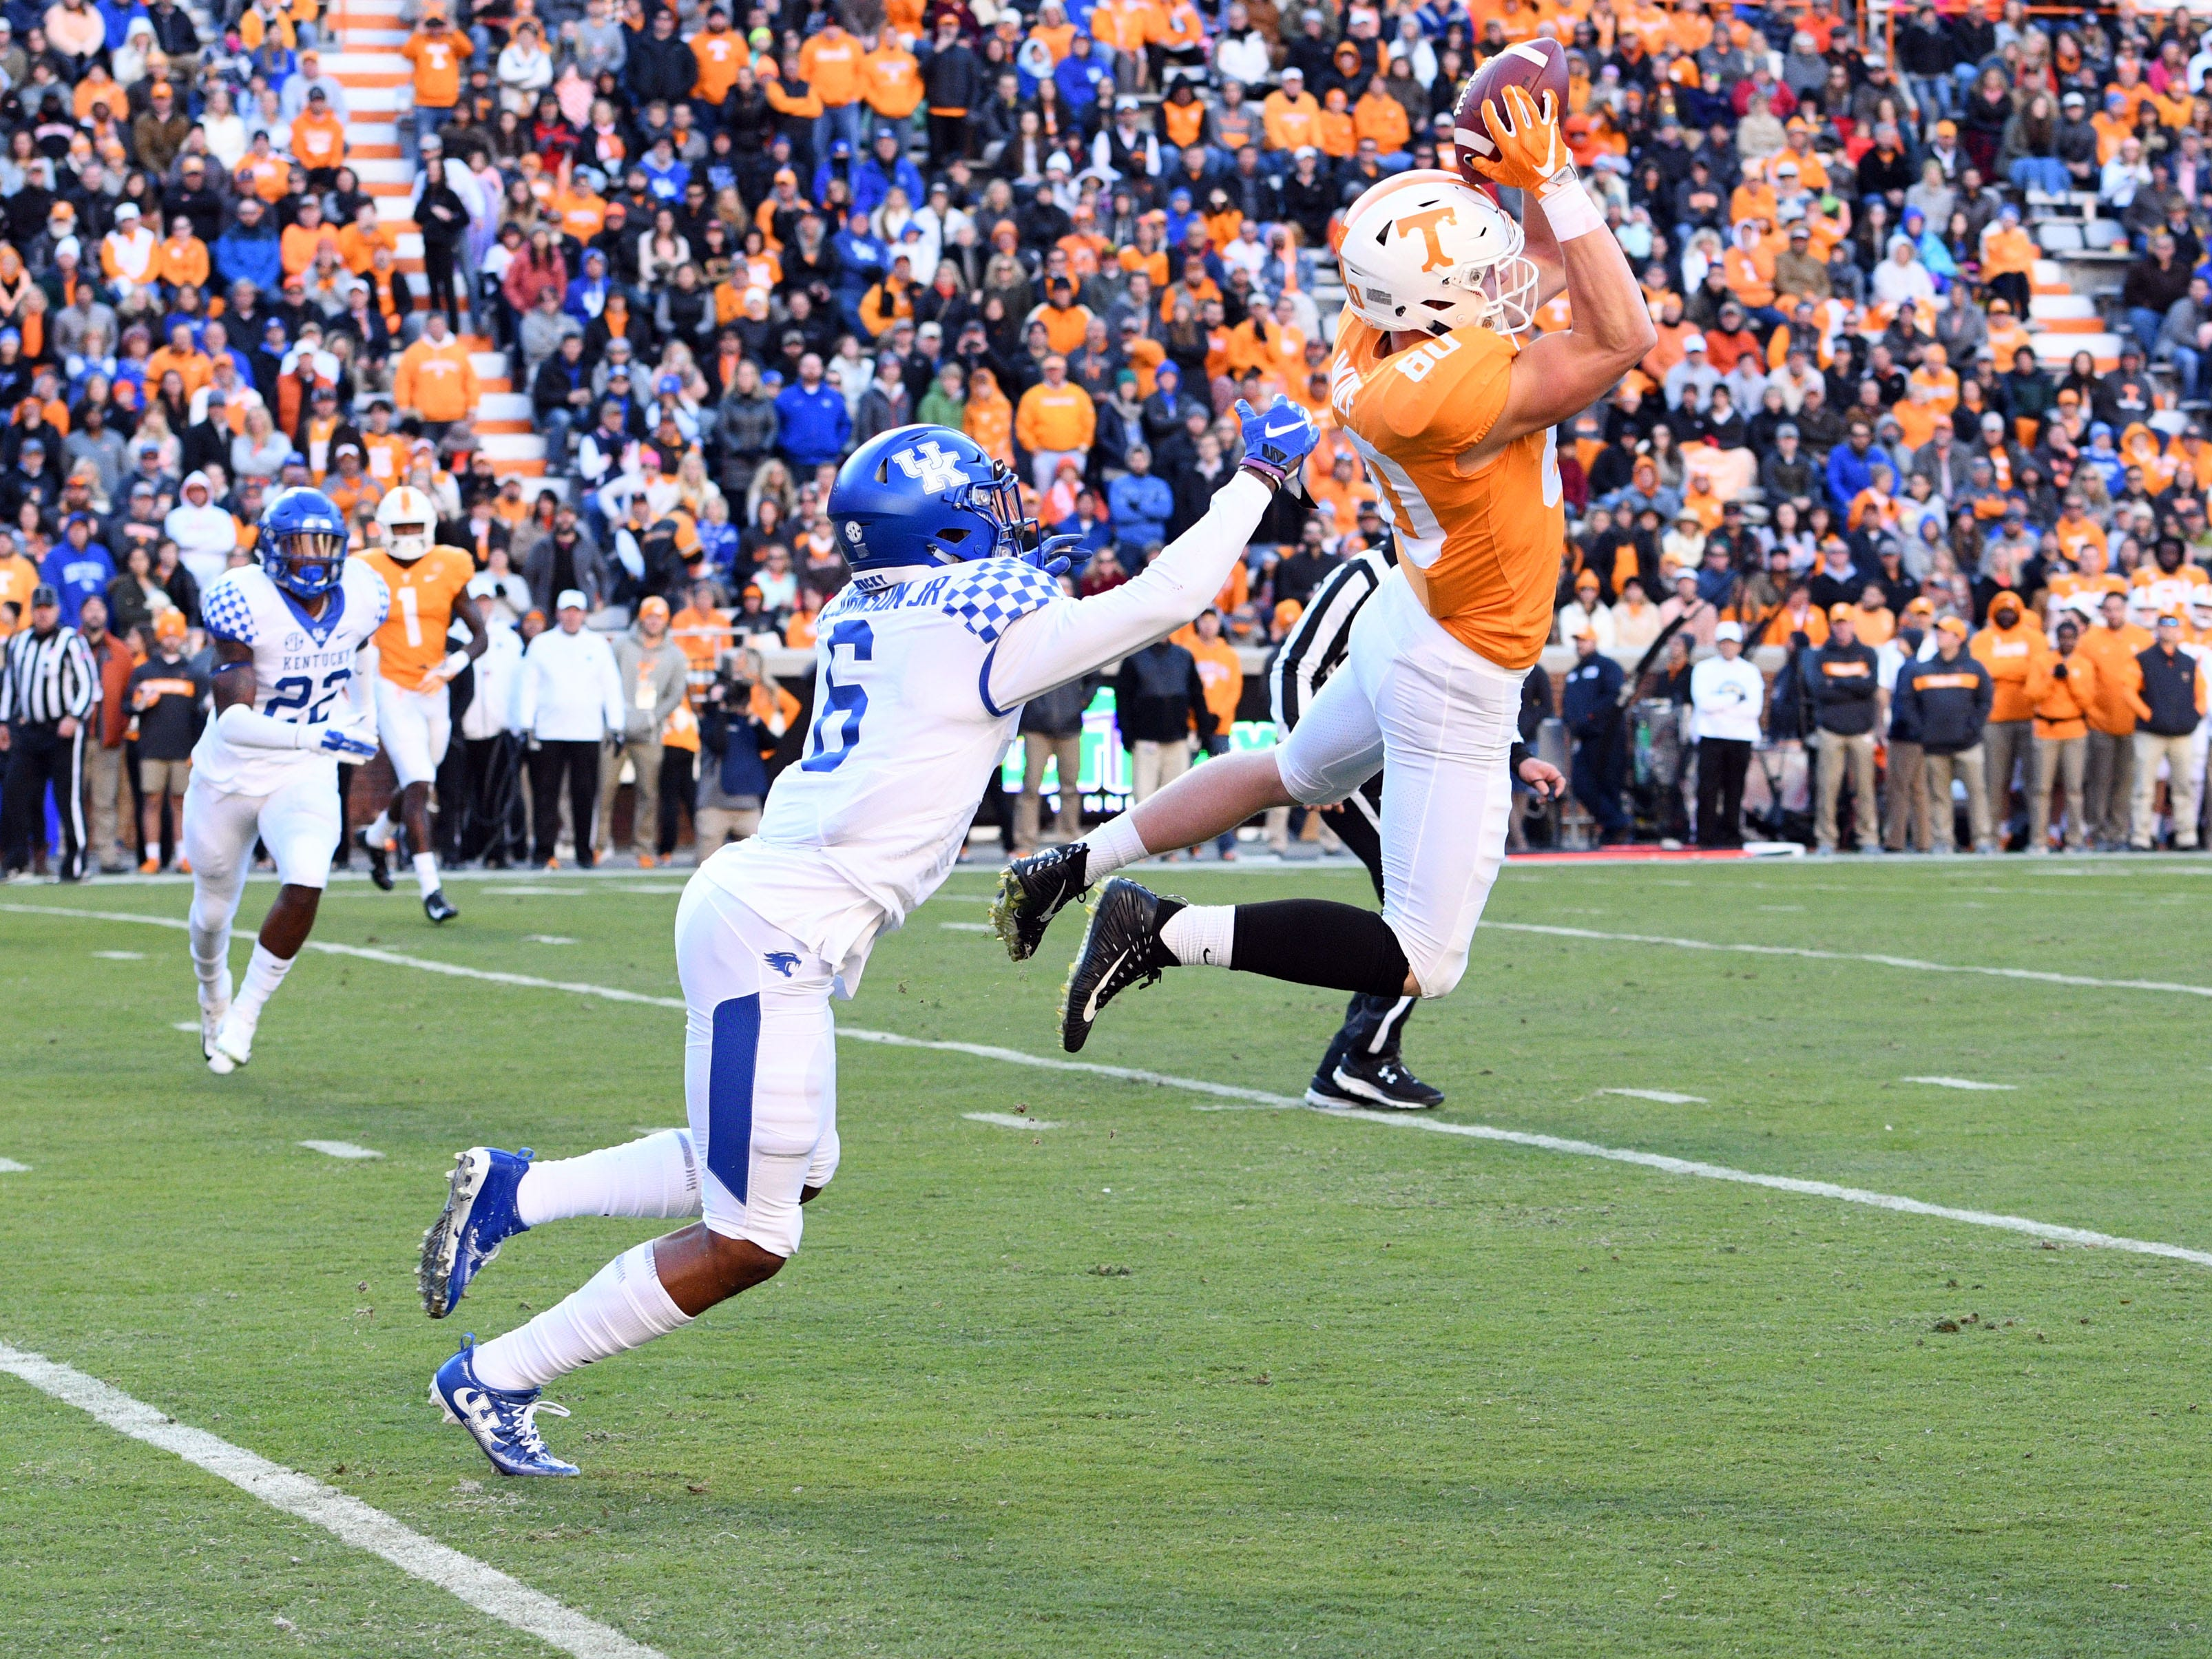 Tennessee tight end Eli Wolf (80) makes the catch near the end zone during a game between Tennessee and Kentucky at Neyland Stadium in Knoxville, Tennessee on Saturday, November 10, 2018.